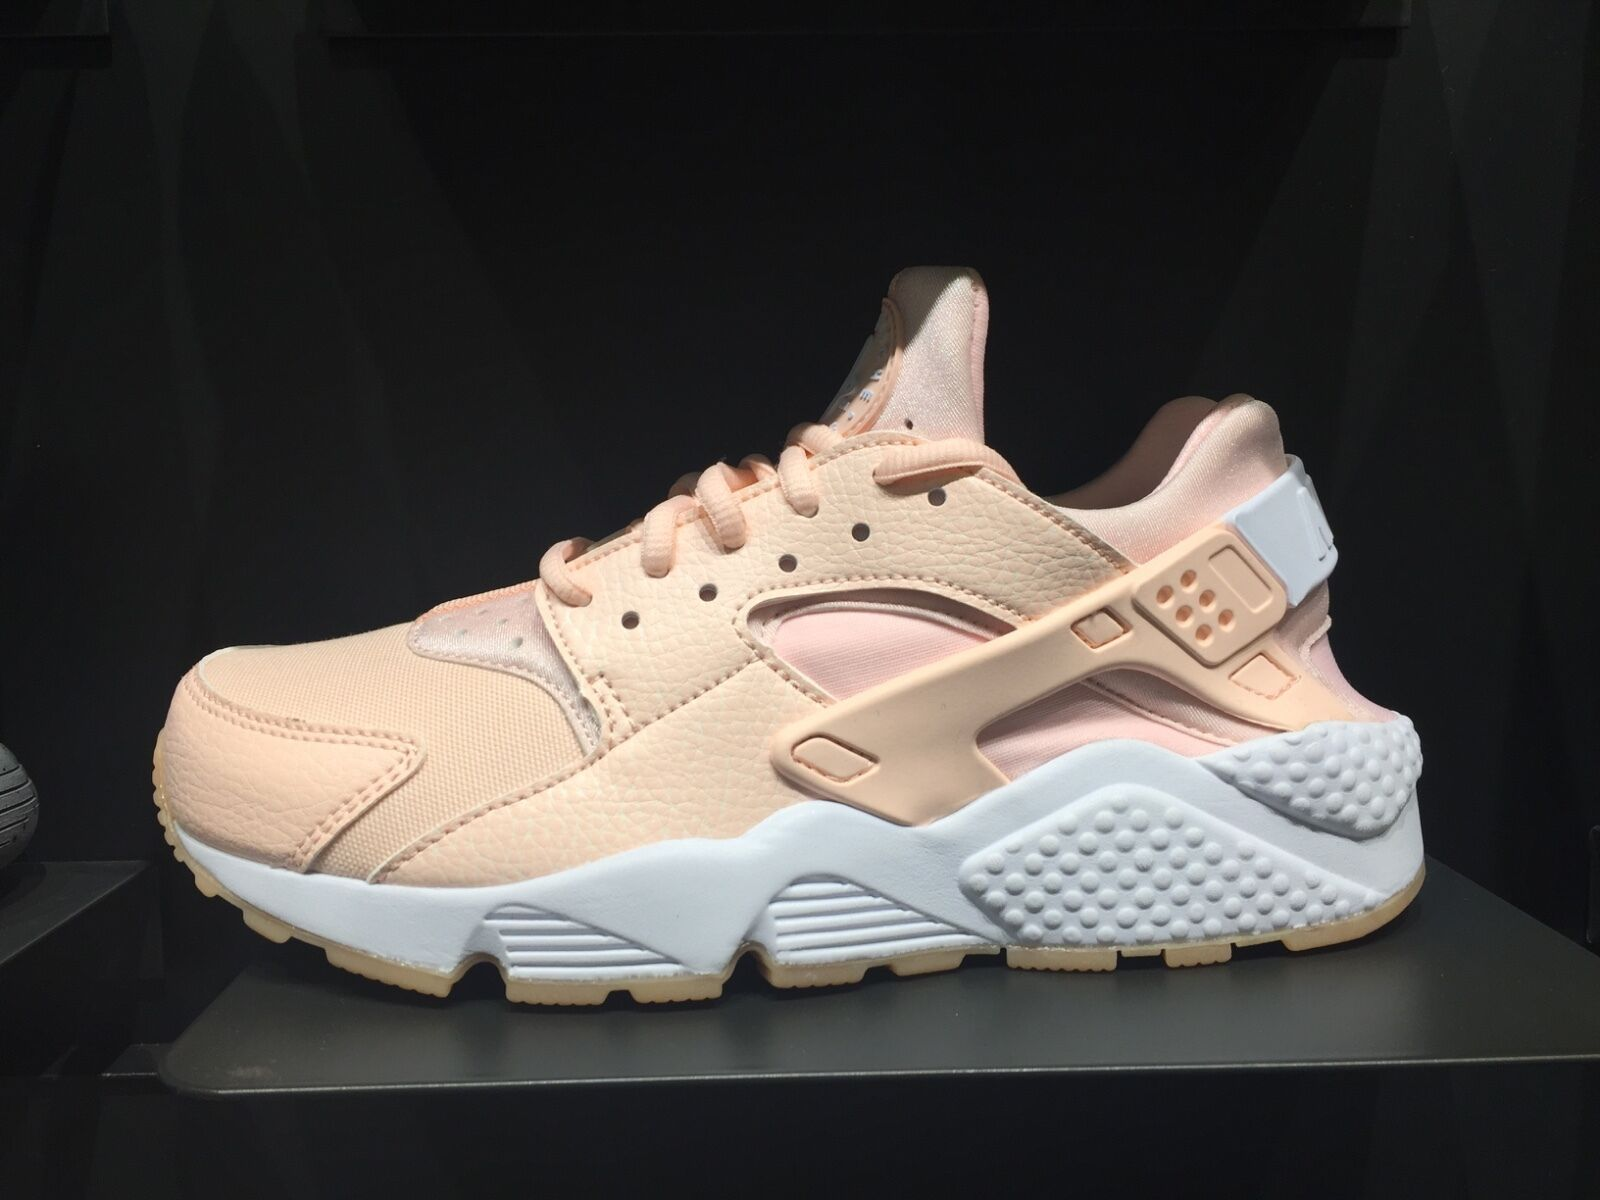 NIKE AIR HUARACHE RUN Pink wheat gum RED FLORAL 6 - 12 sunset white black Beige